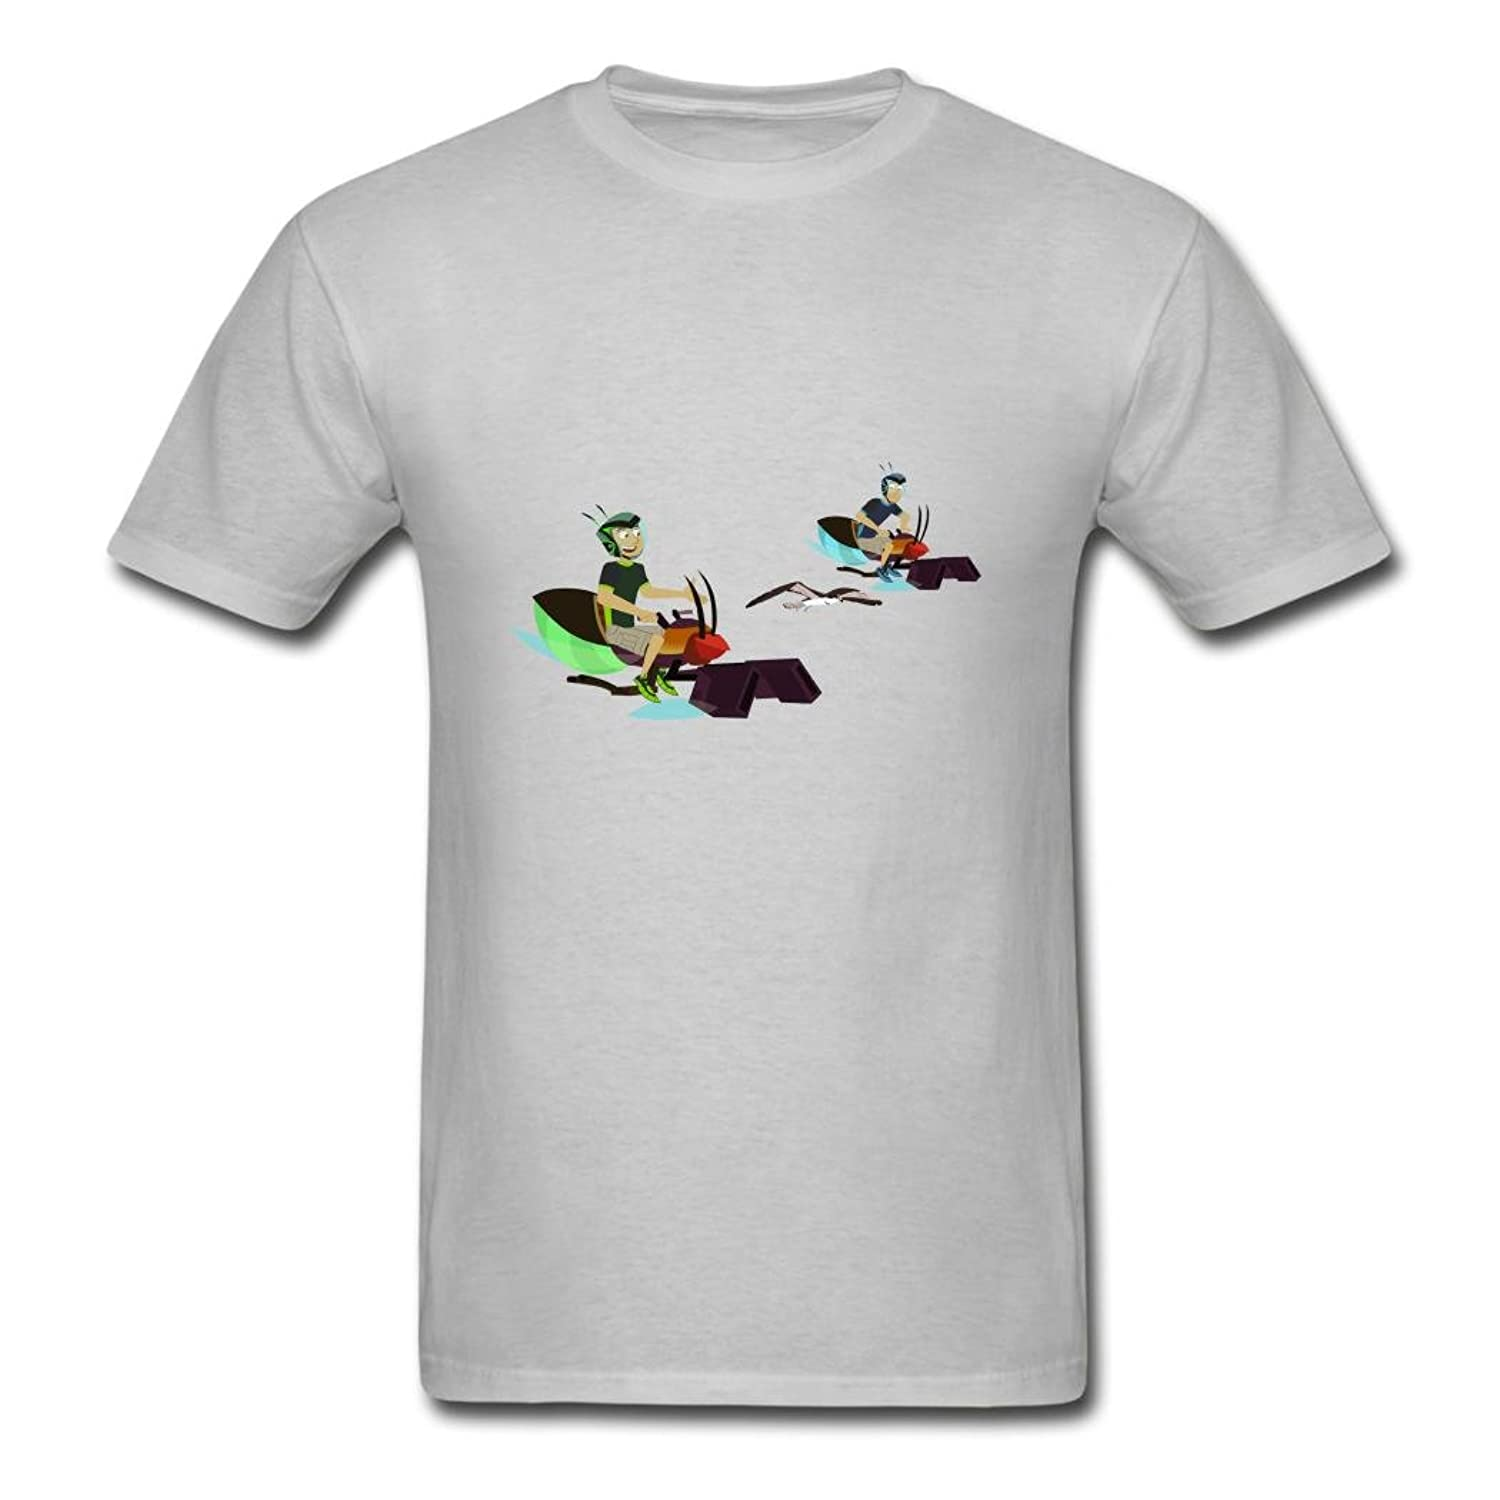 Adults' Cotton Custom The Wild Kratts Osprey T Shirt Gray